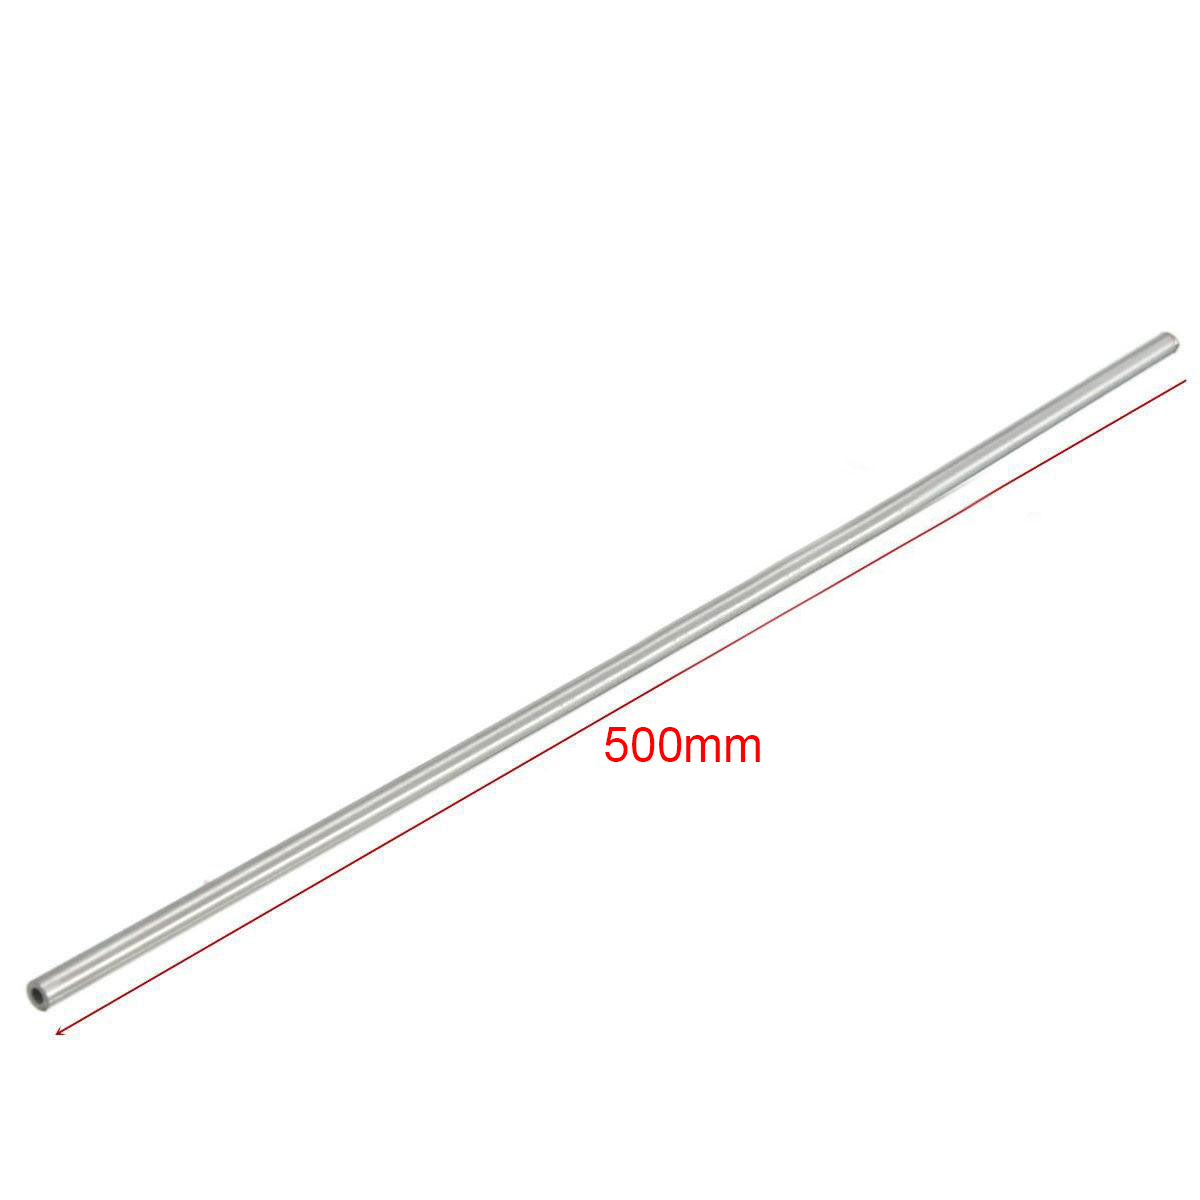 2pcs New 304 Stainless Steel Tube Silver Capillary Tubes 2mm OD 1.6mm ID 500mm Length